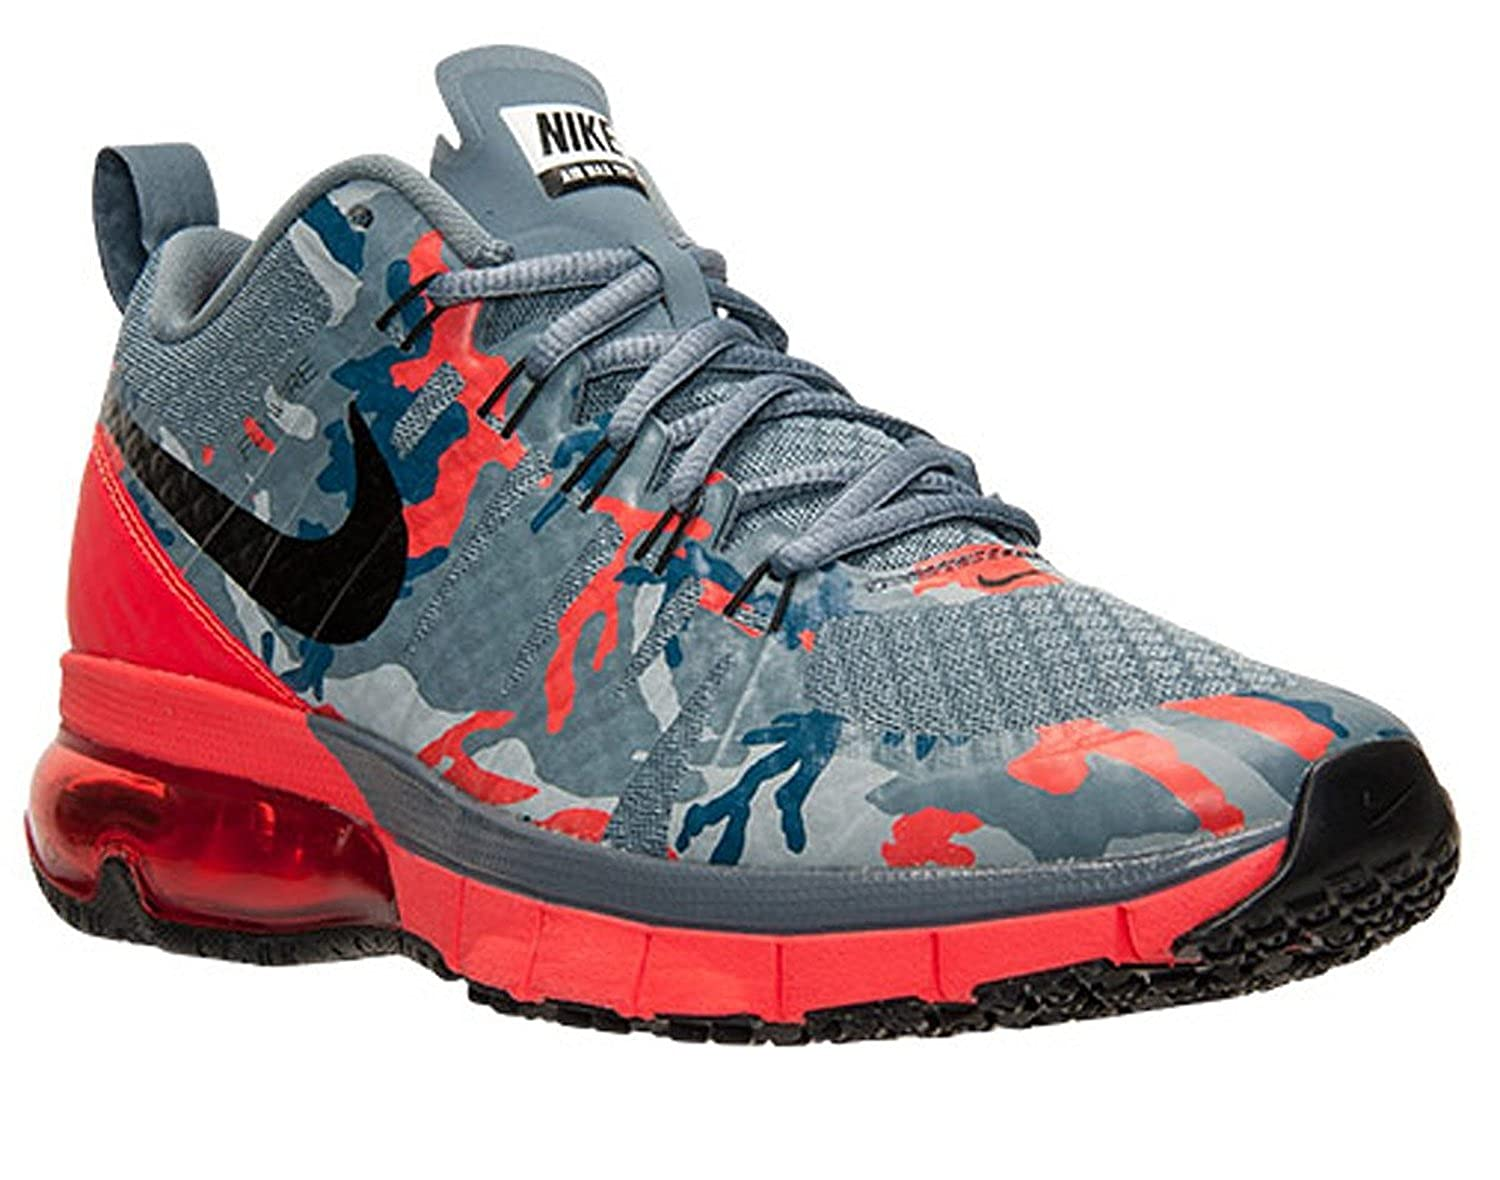 f104ff1418 Nike Men s Air Max TR180 AMP Training Shoes-Blue Graphite Black Bright  Crimson Blue Graphite/Black/Bright Crimson 9.5 D(M) US: Buy Online at Low  Prices in ...